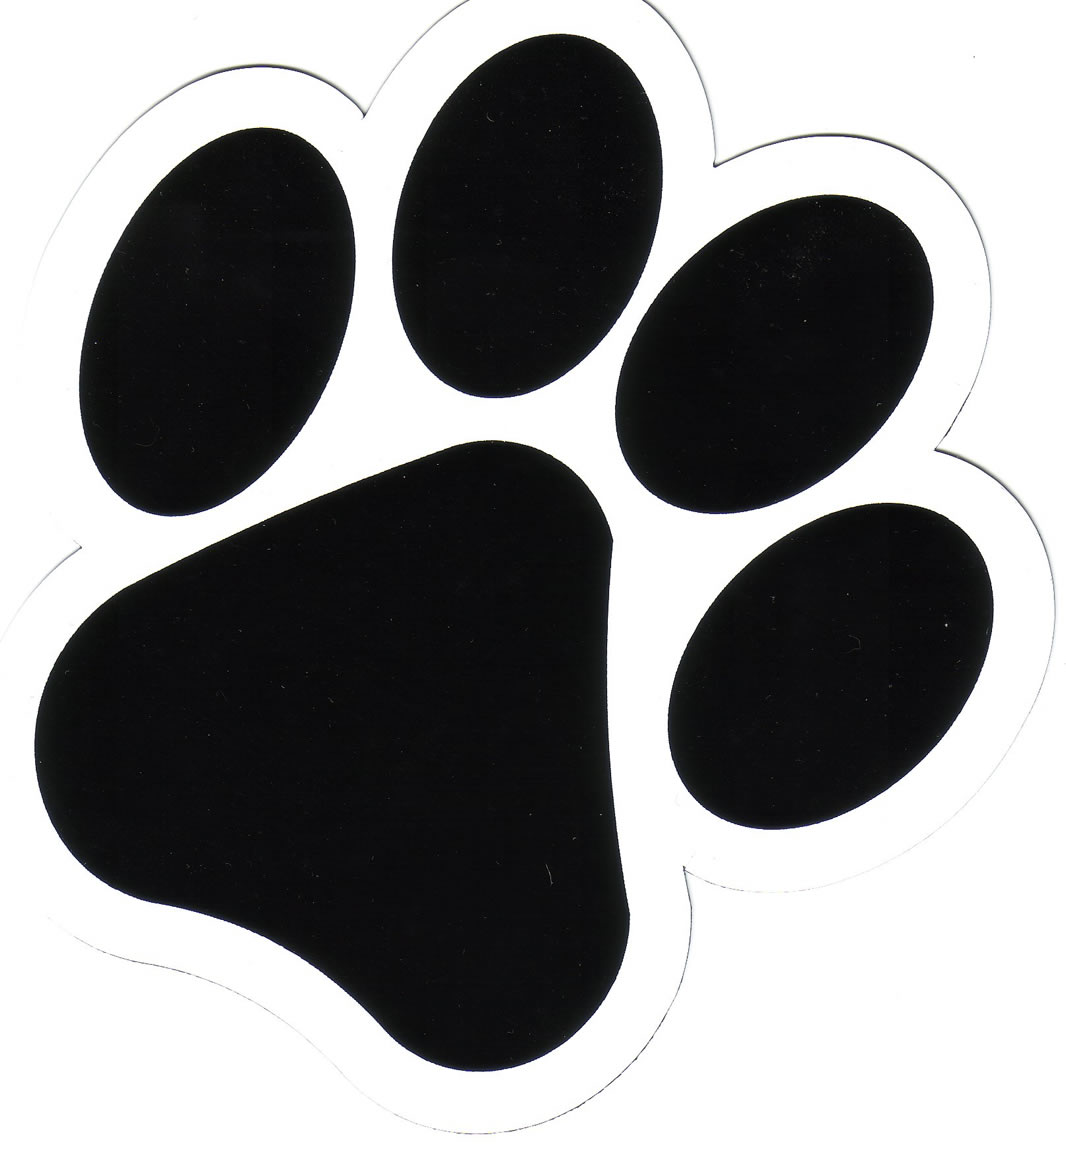 Dog Paw Print Clip Art Free Download - Cliparts.co